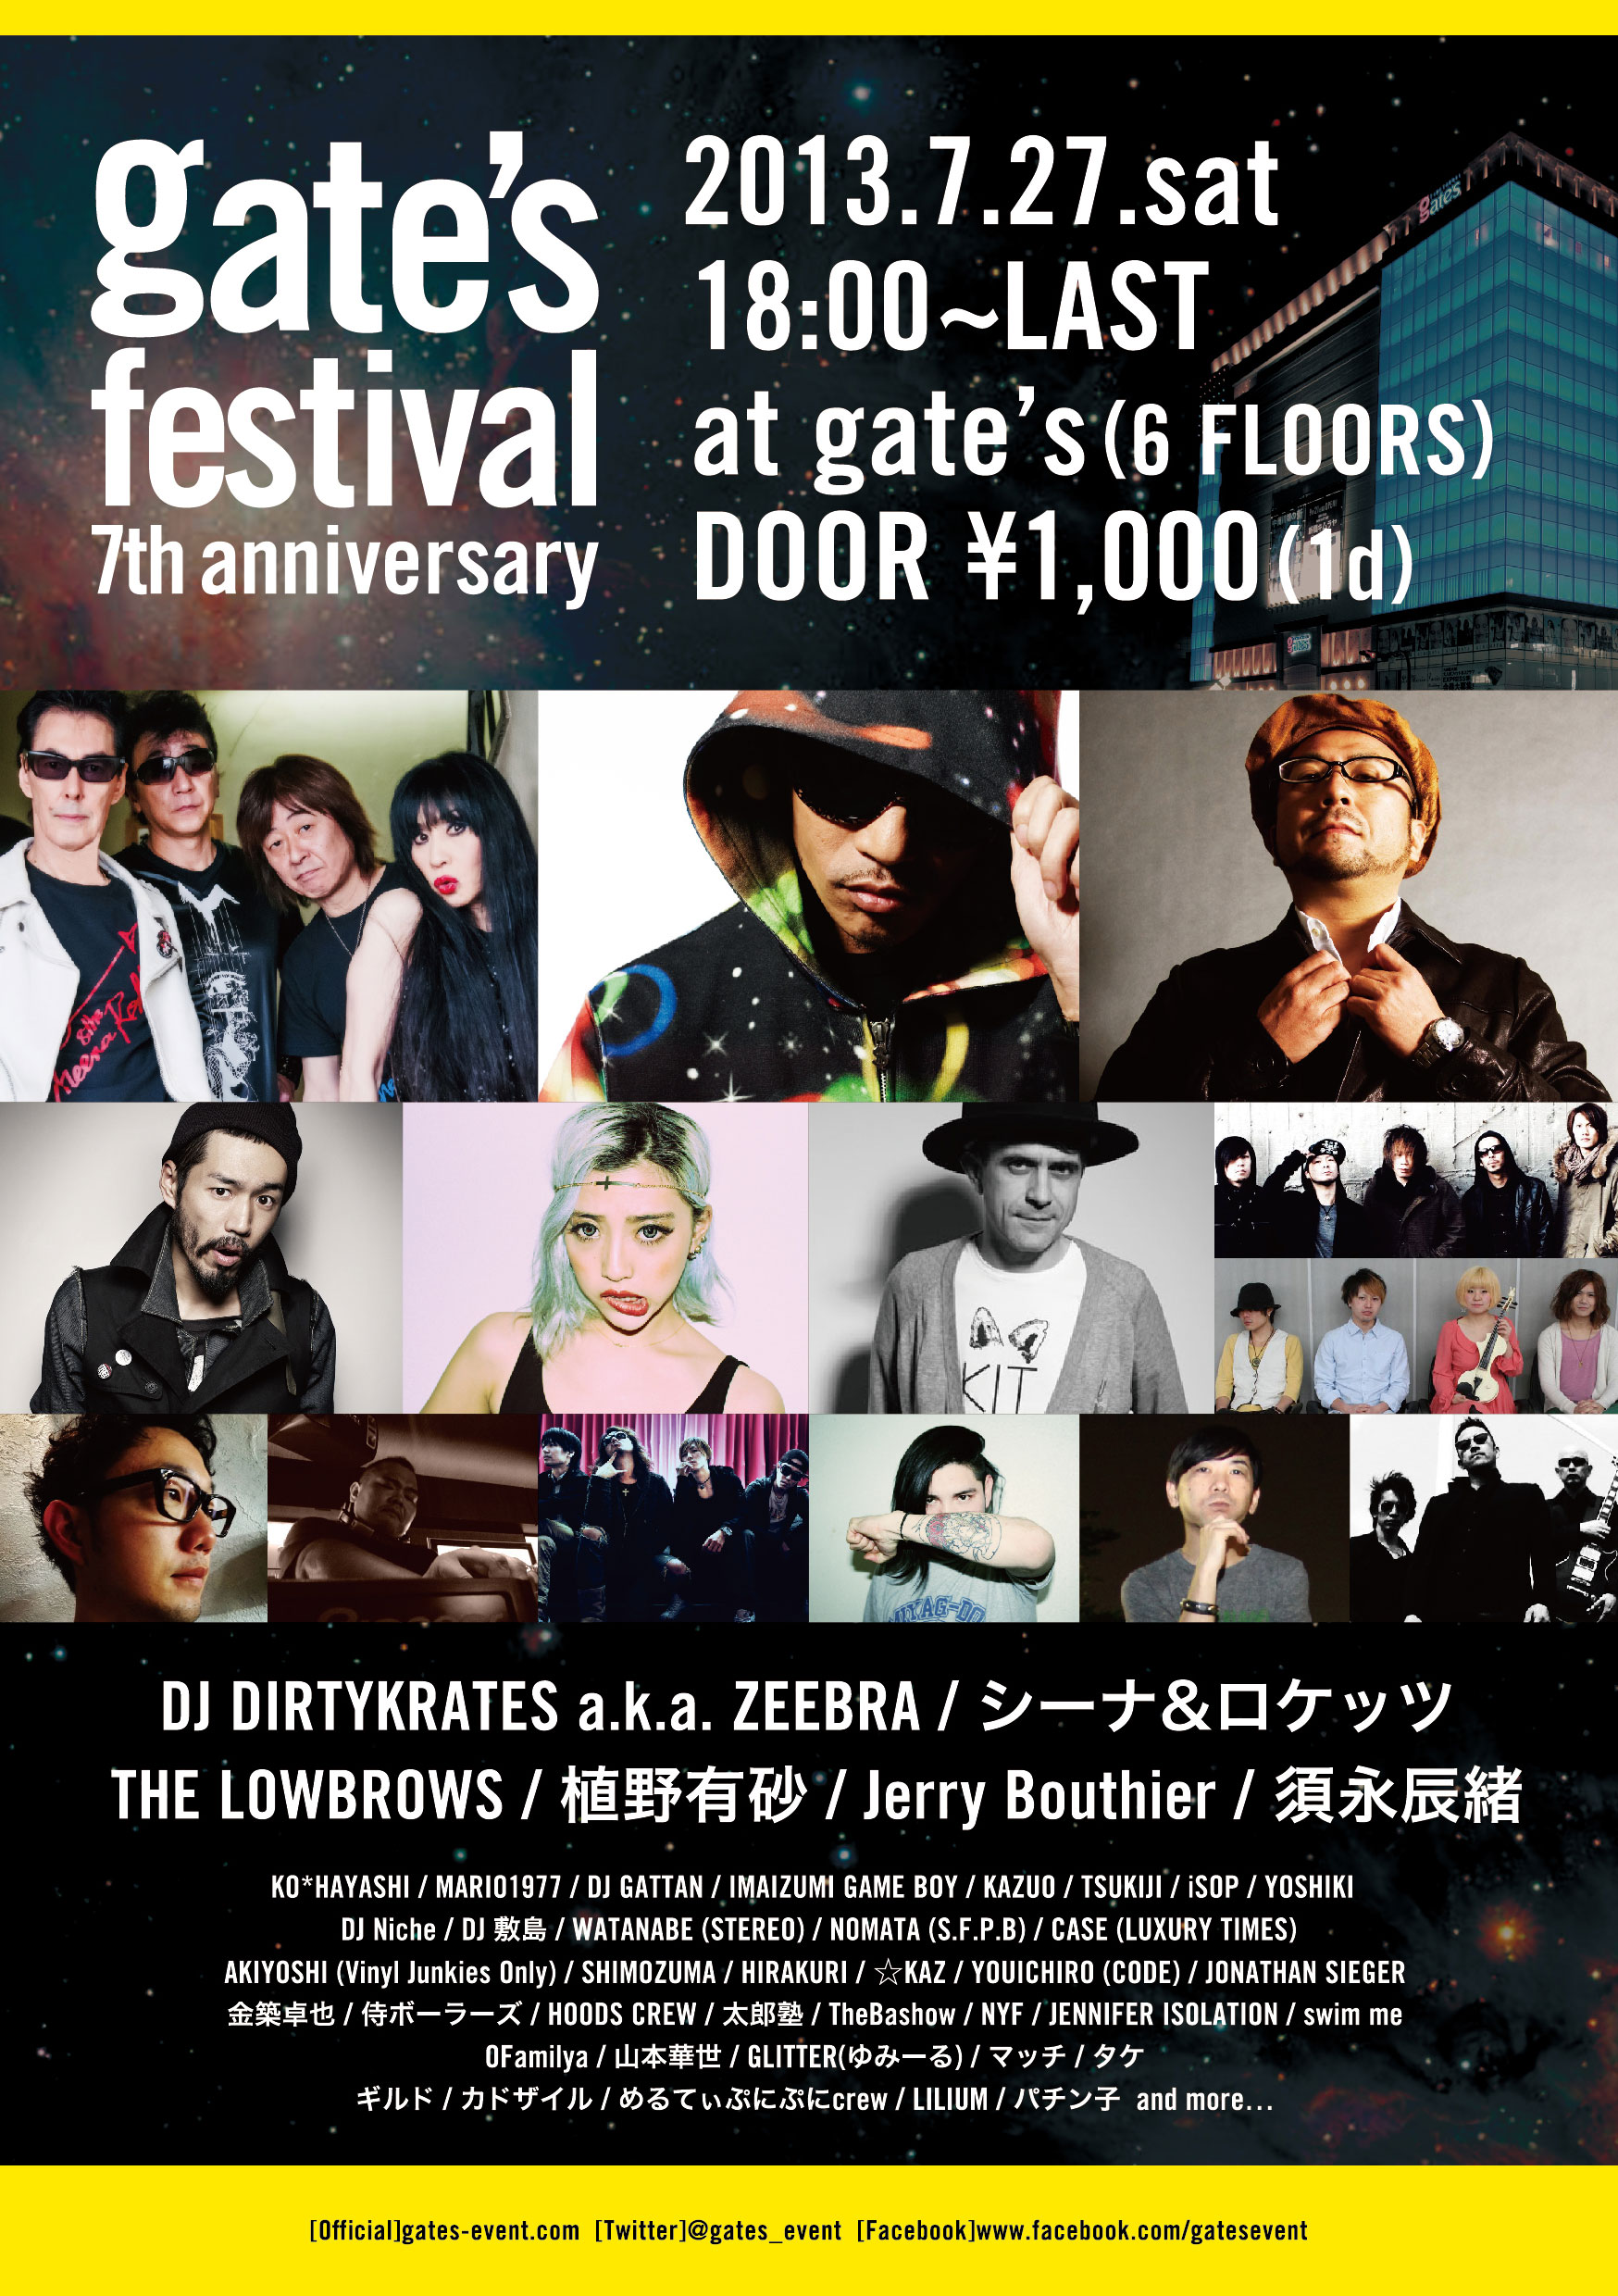 gate's festival -7th anniversary-